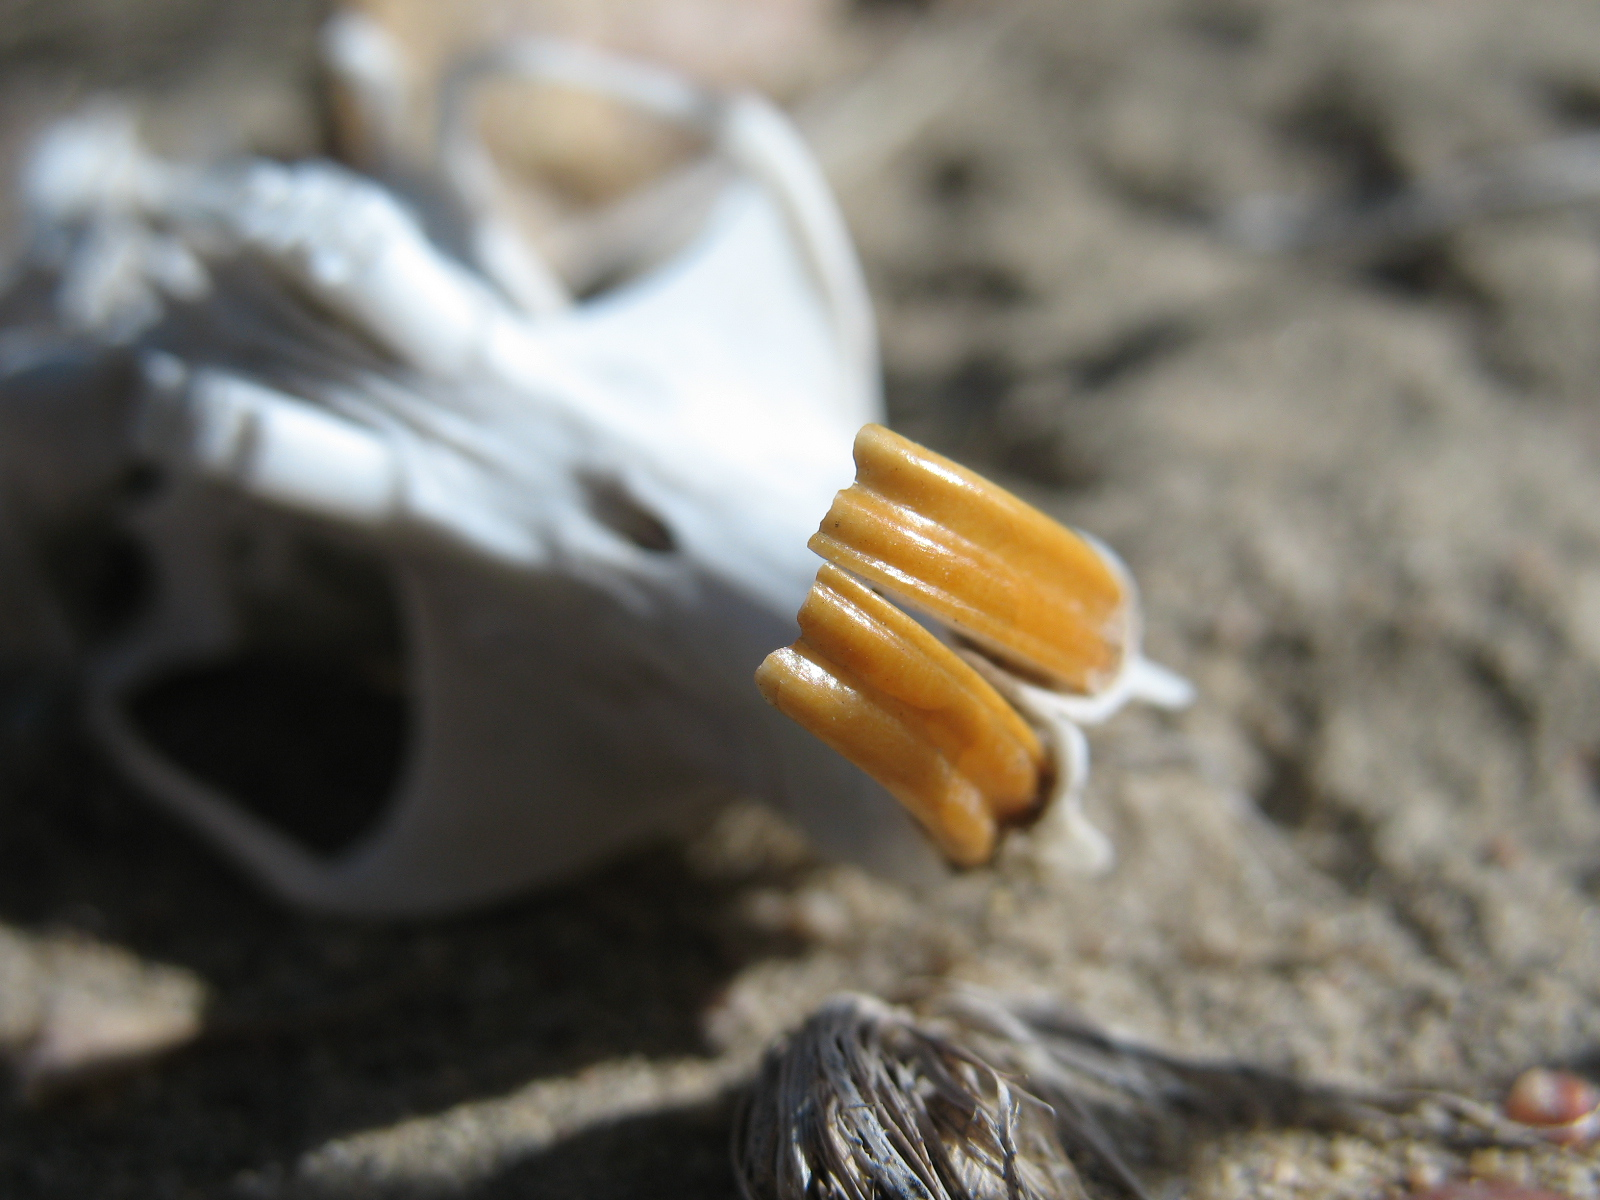 Photo by Author of a Squirrel skull in rural Colorado